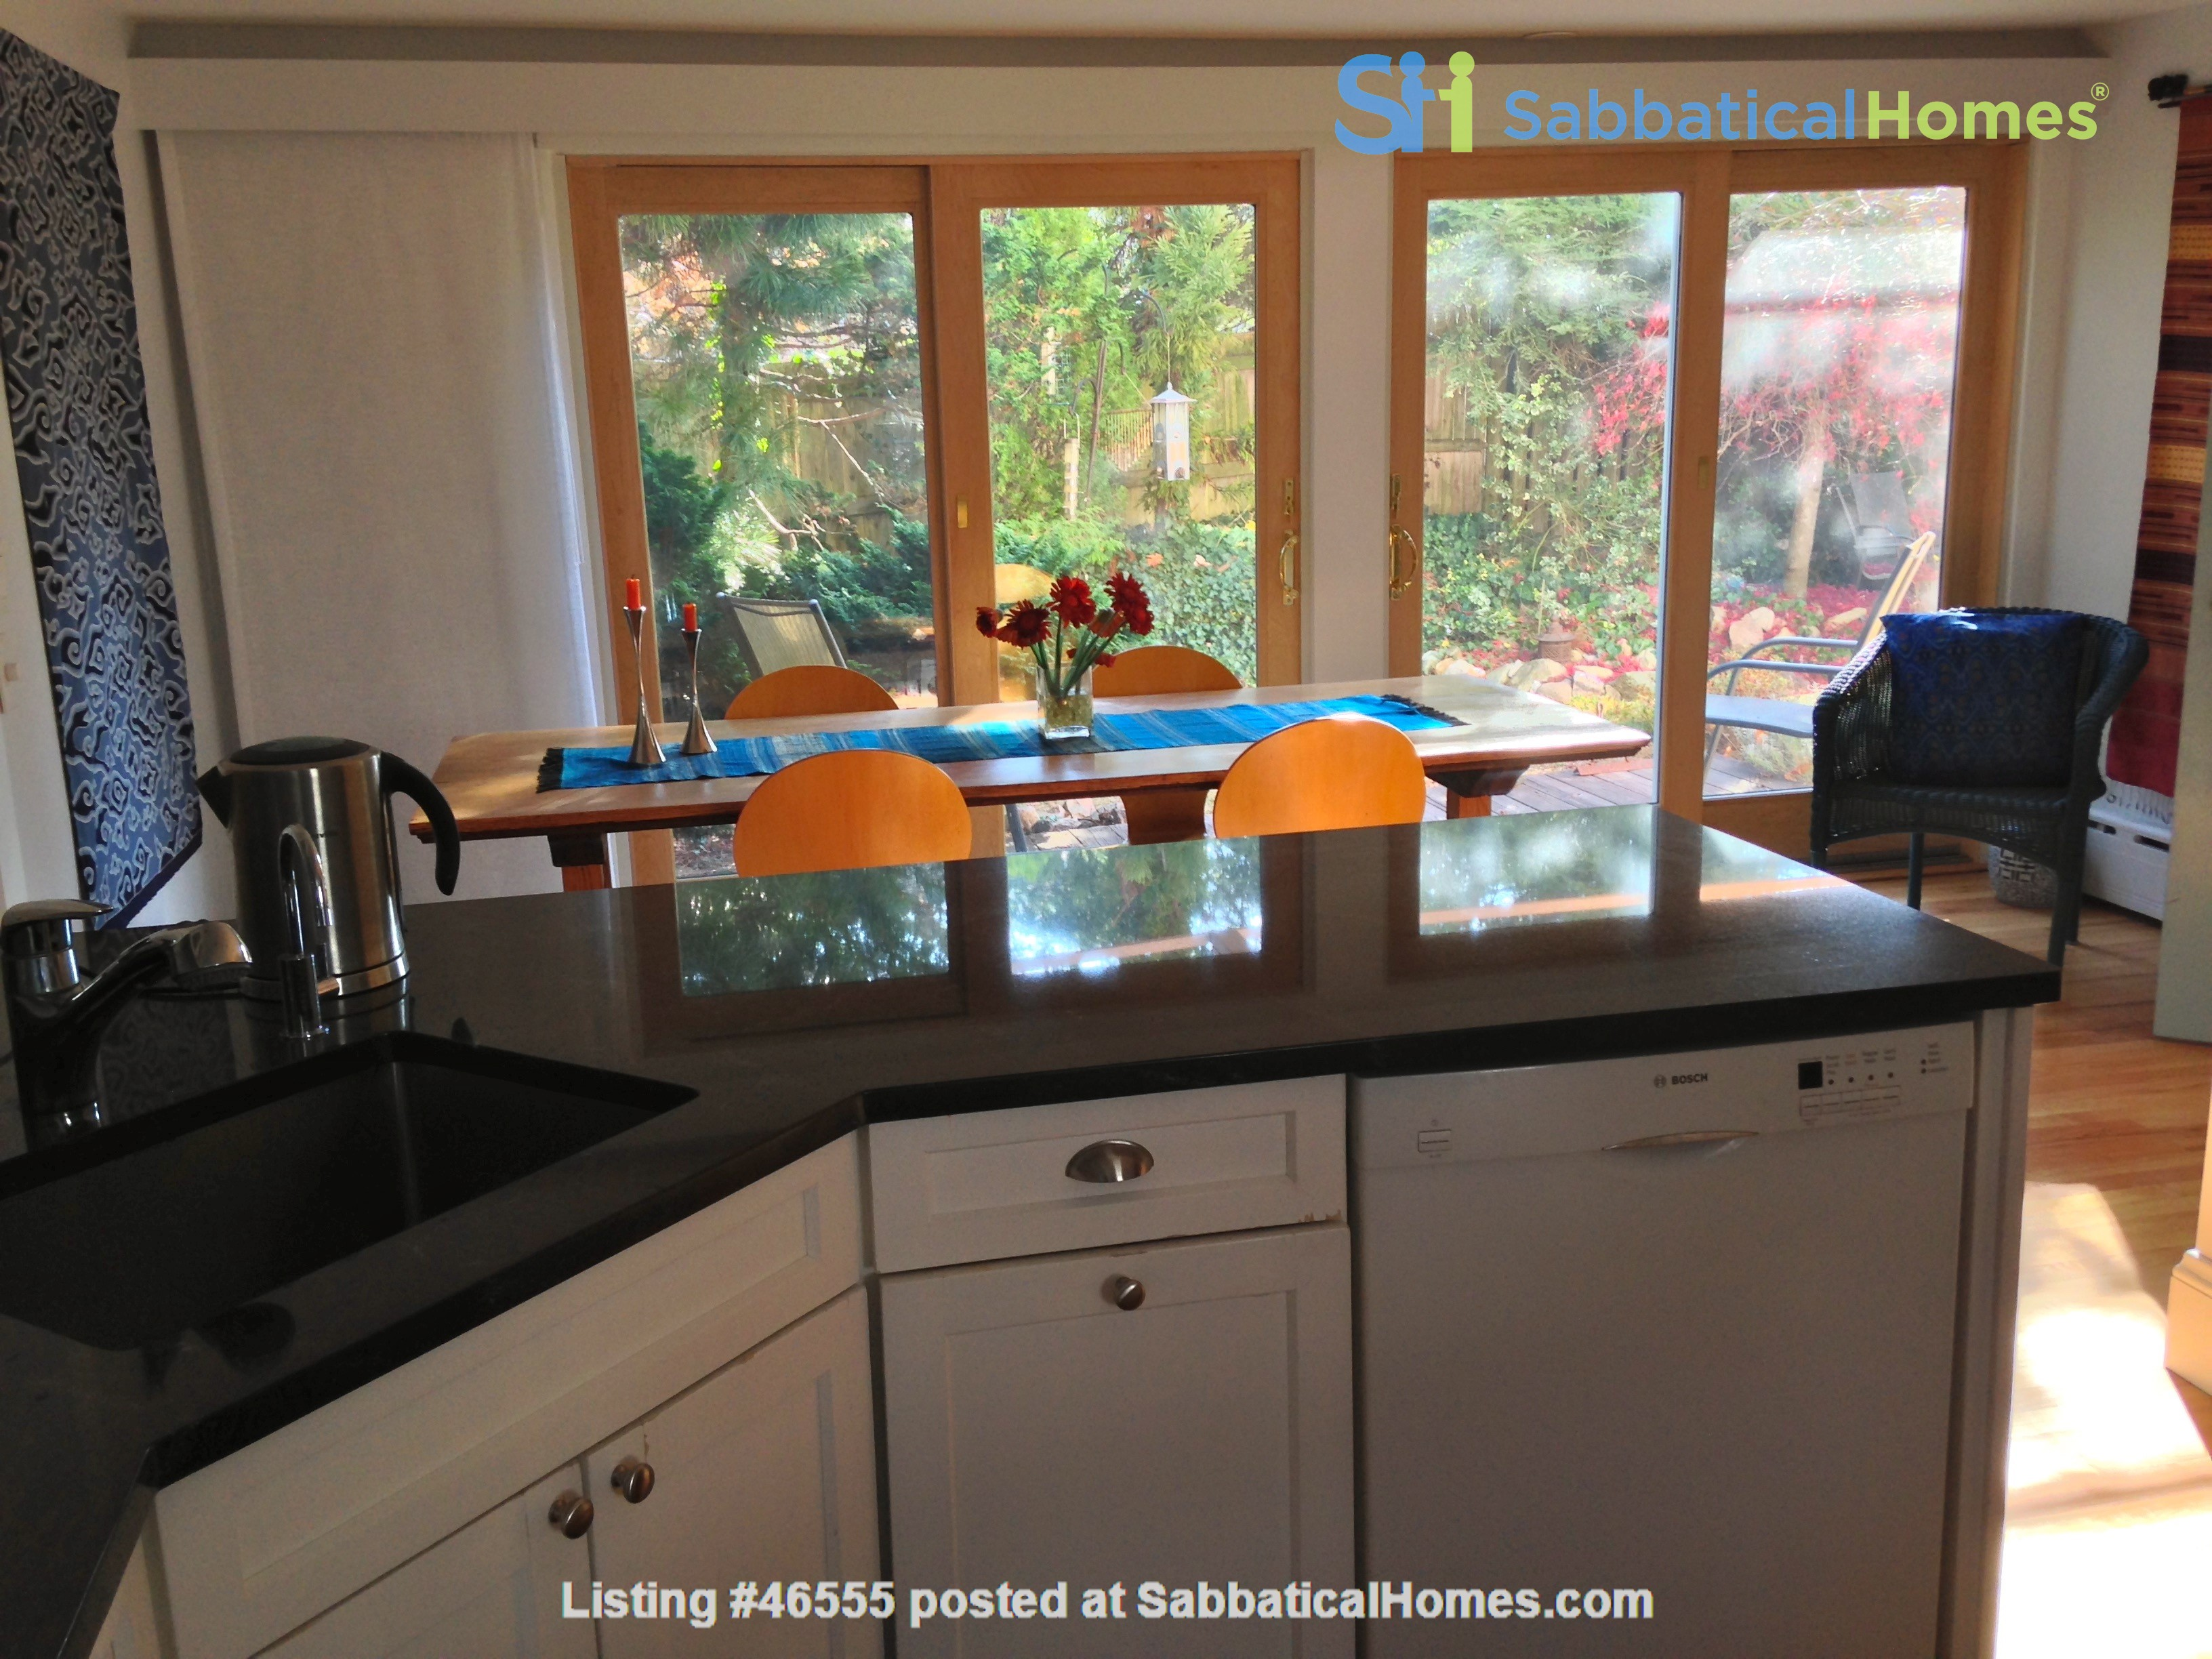 3BR furnished home in Newton on quiet street, next to park - walk to lake Home Rental in Newton, Massachusetts, United States 4